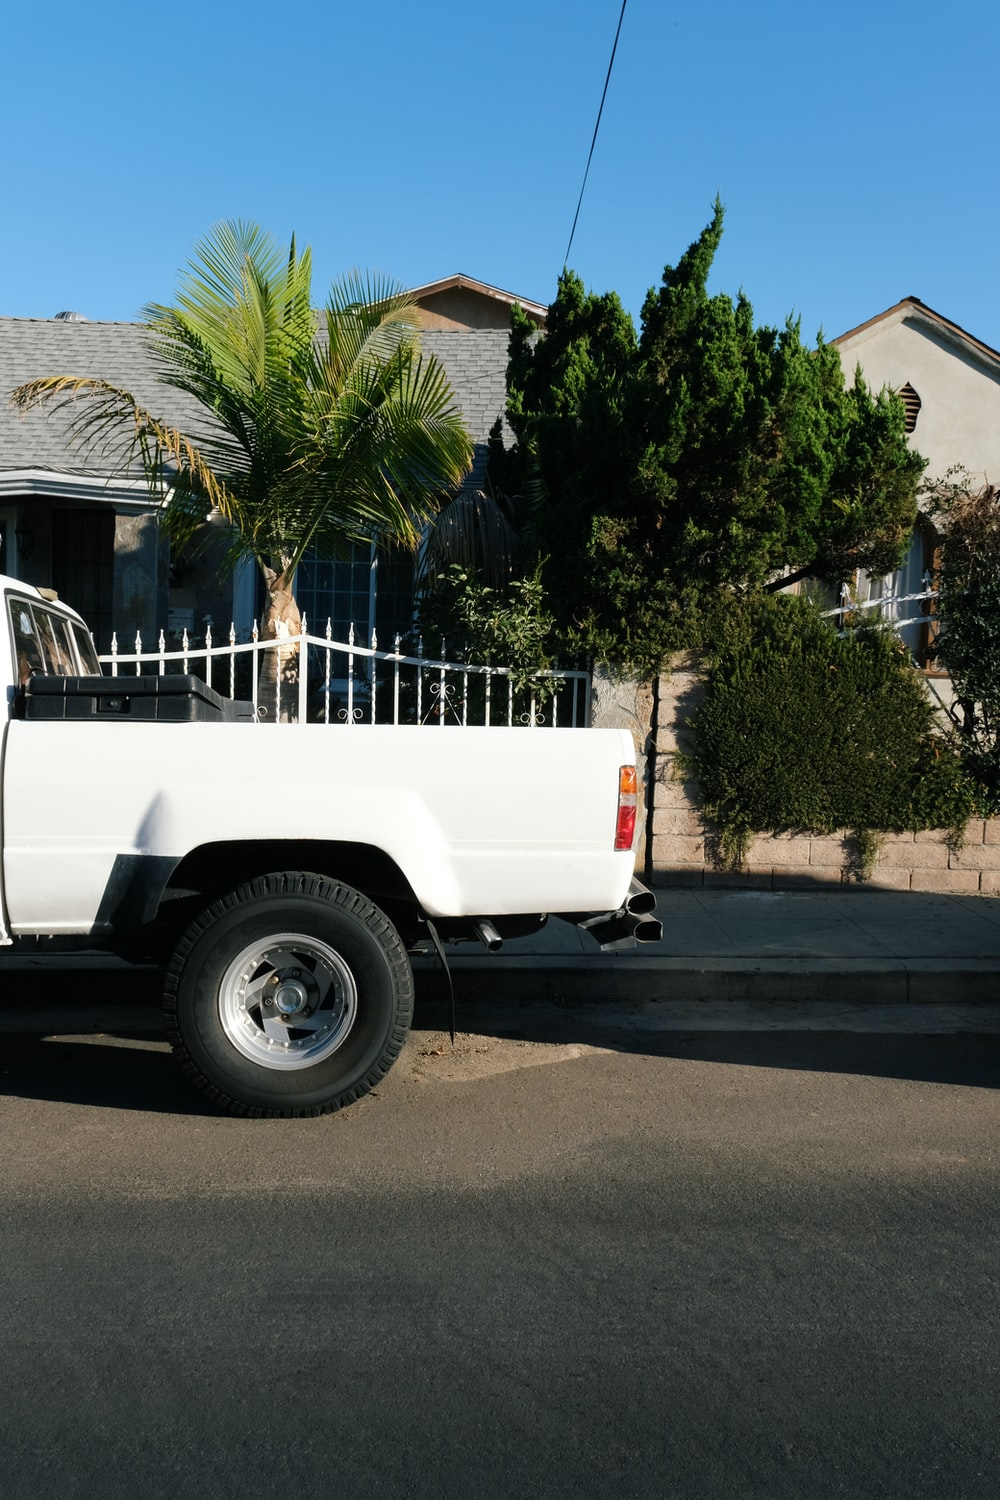 white single cab pickup truck parked near palm trees during daytime